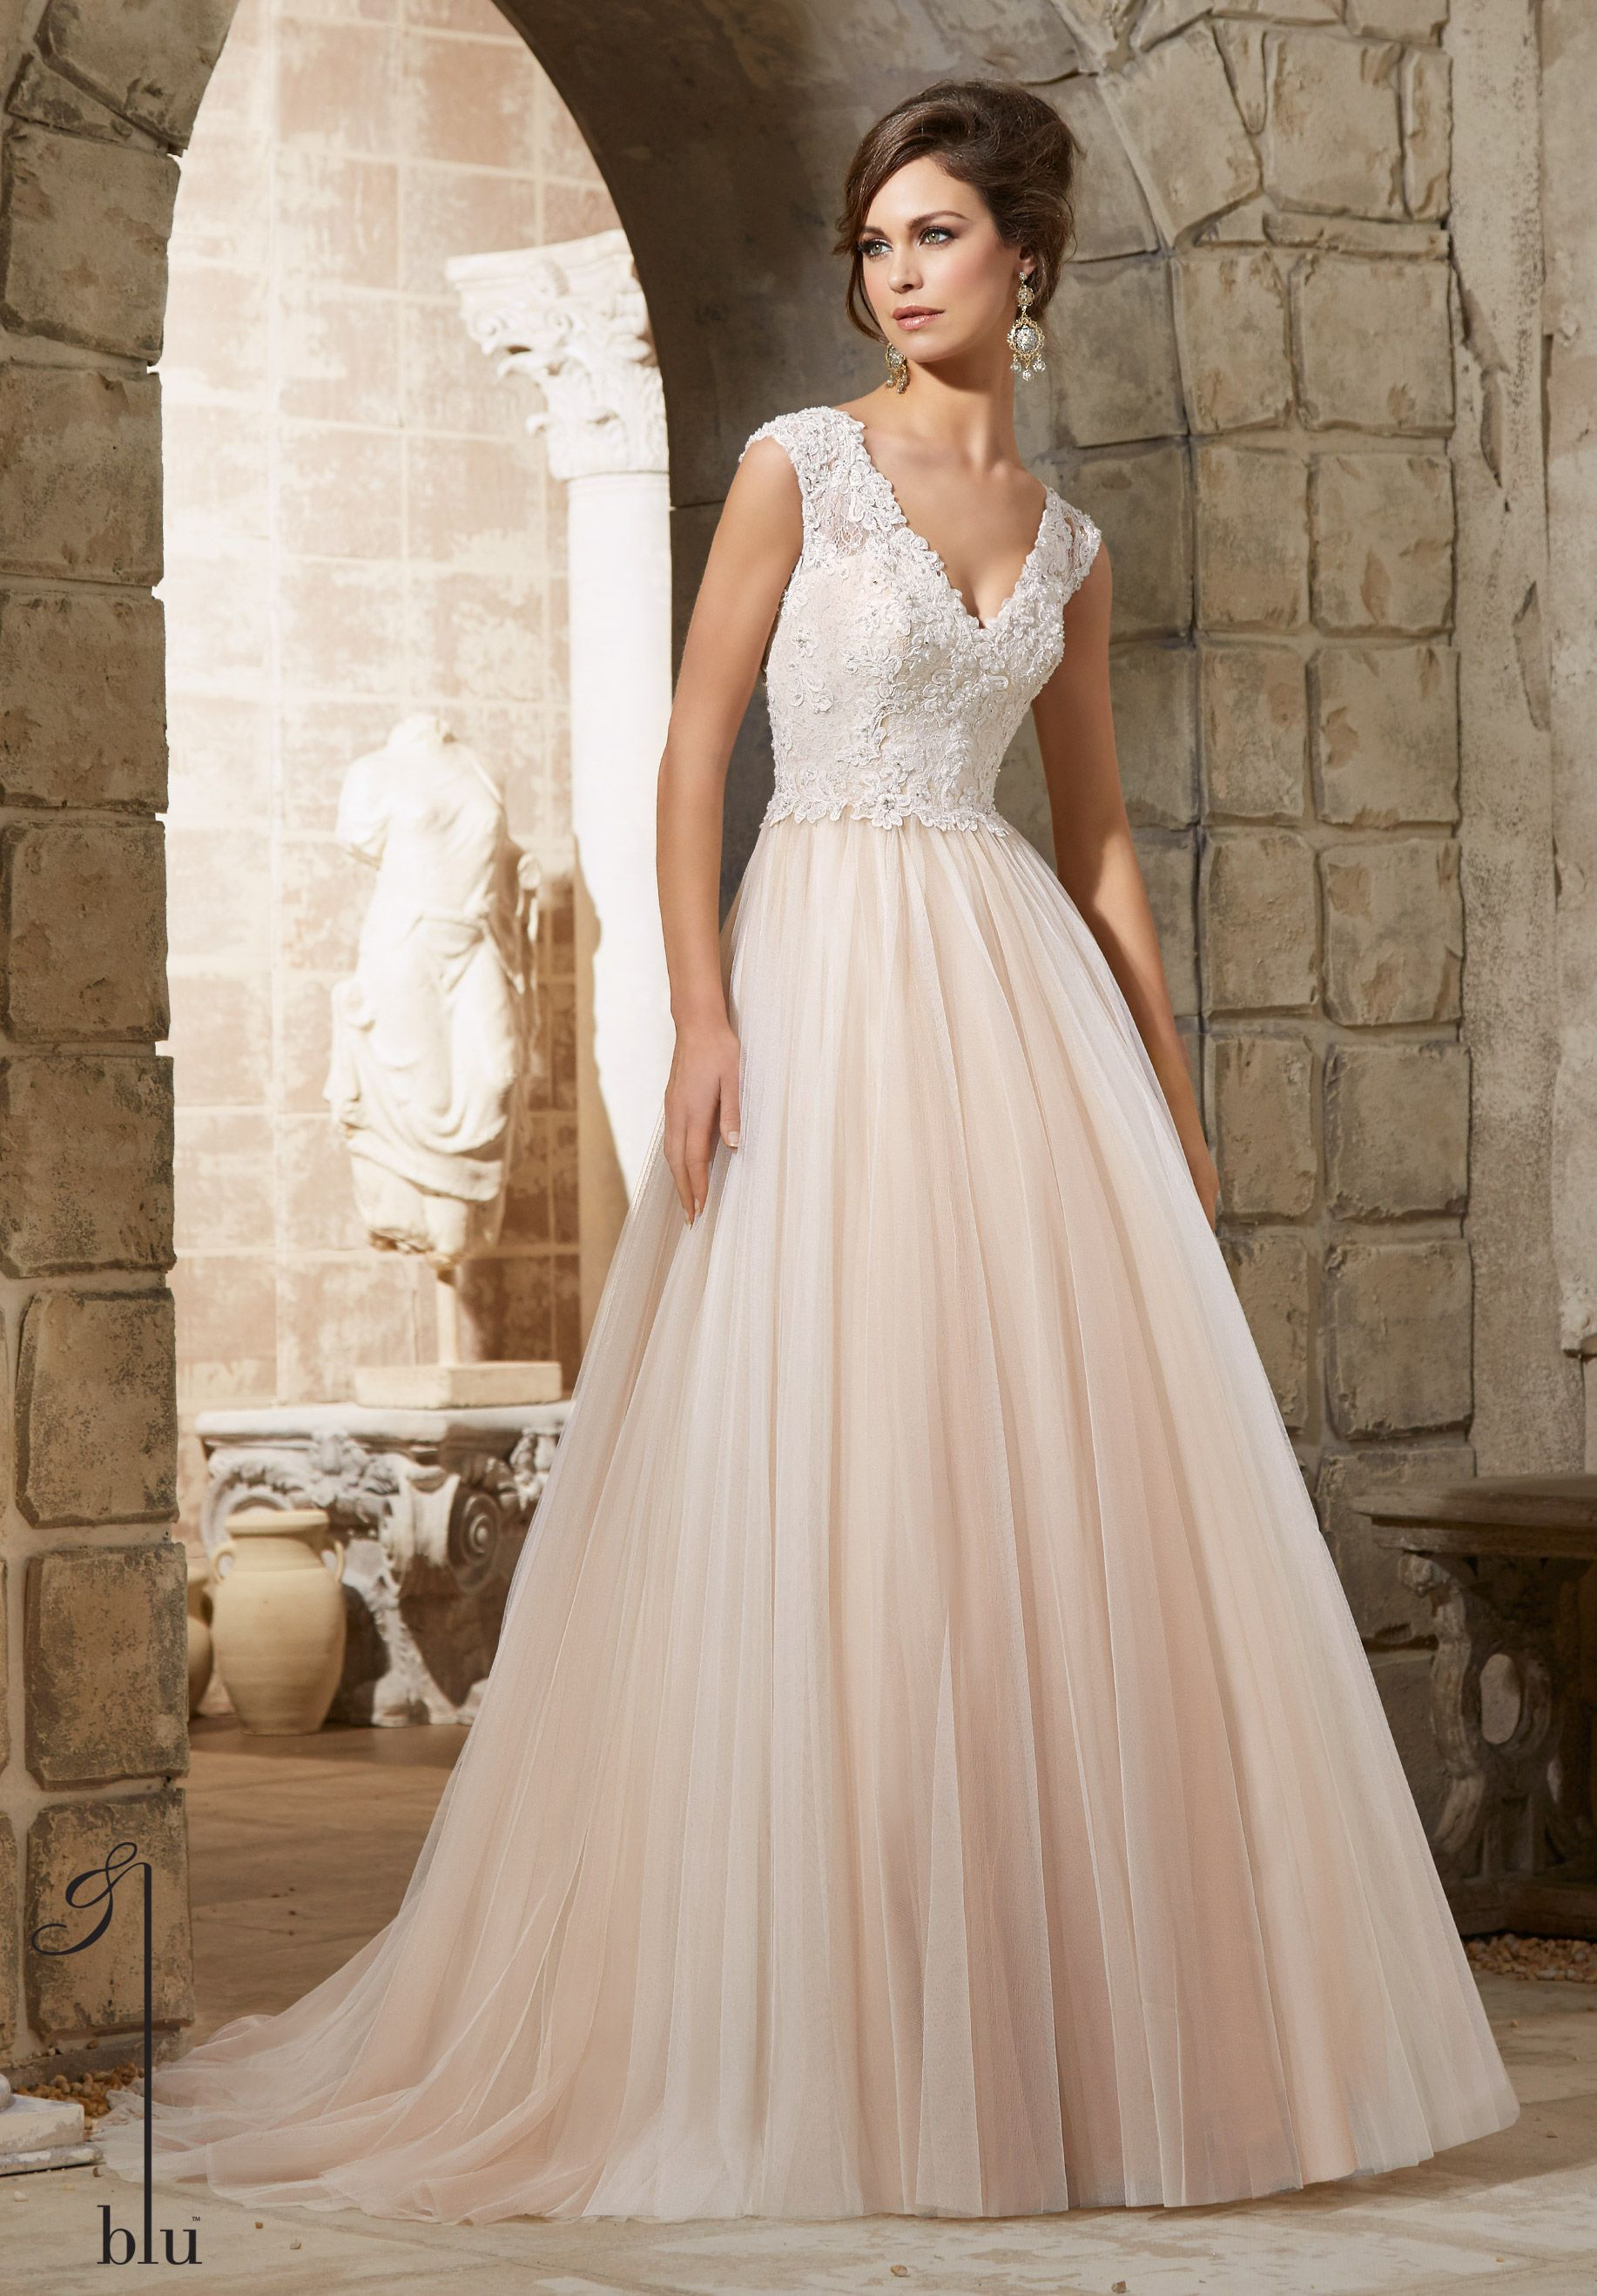 chantilly lace wedding dress Wedding Gowns Dresses Embroidered Lace Appliques with Crystal Beading Overlay the Chantilly Lace on